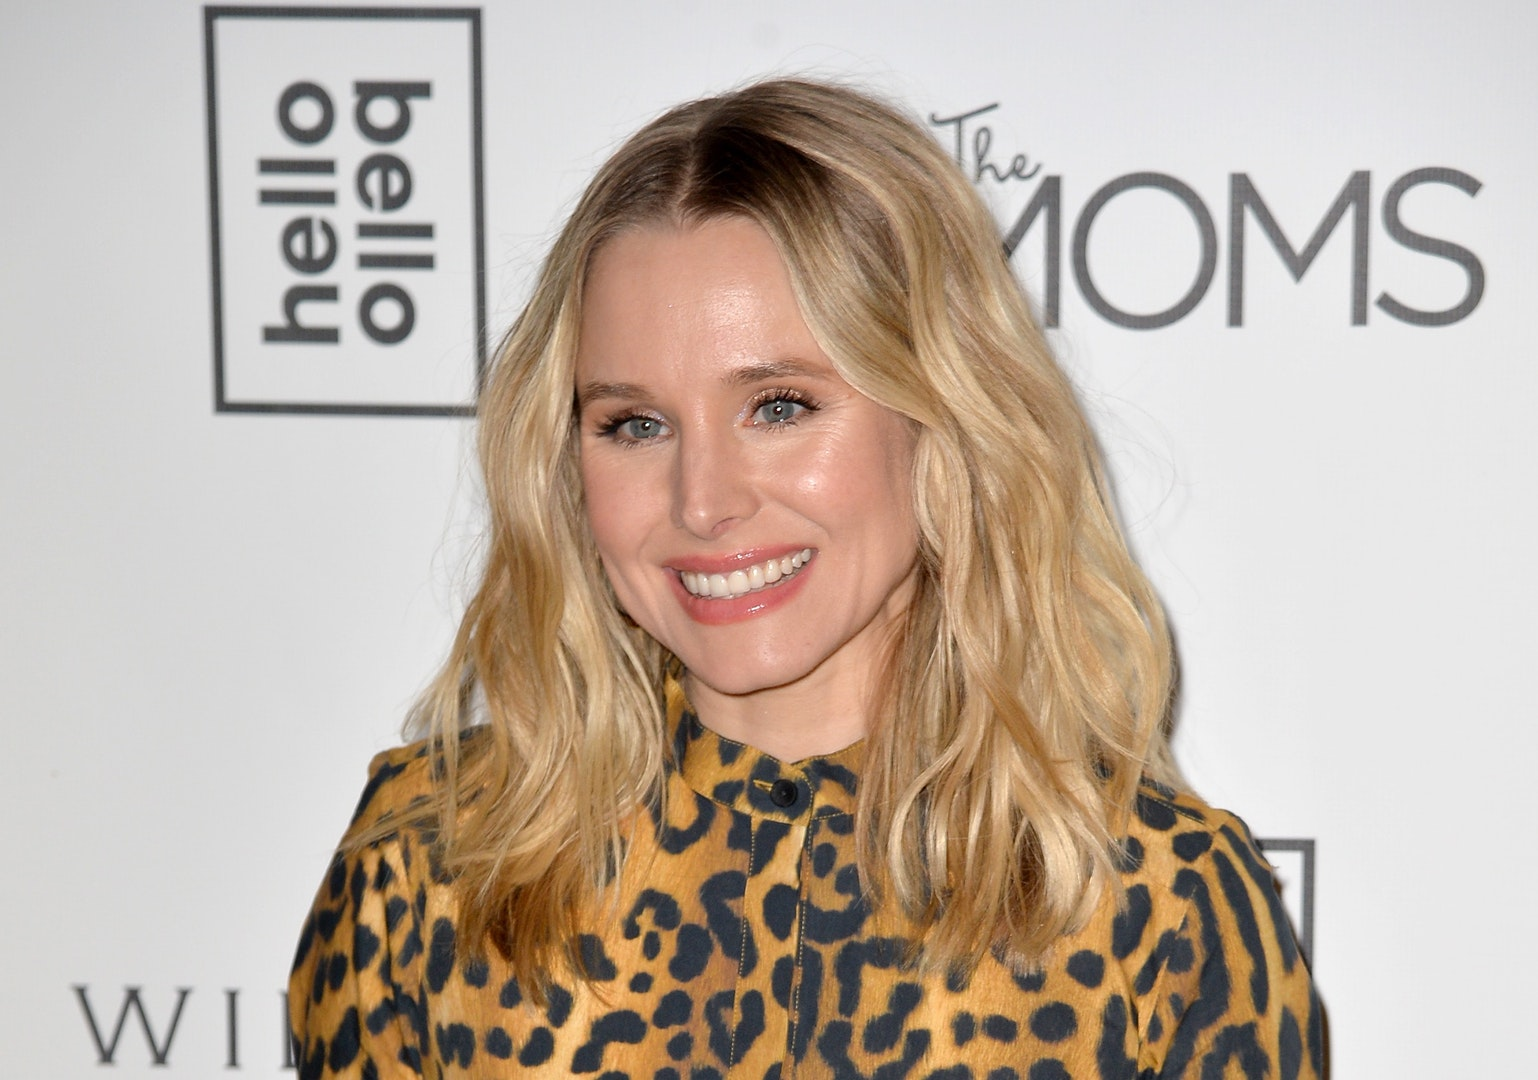 Surprising reason why Kristen Bell was 'never' able to watch 'Veronica Mars'